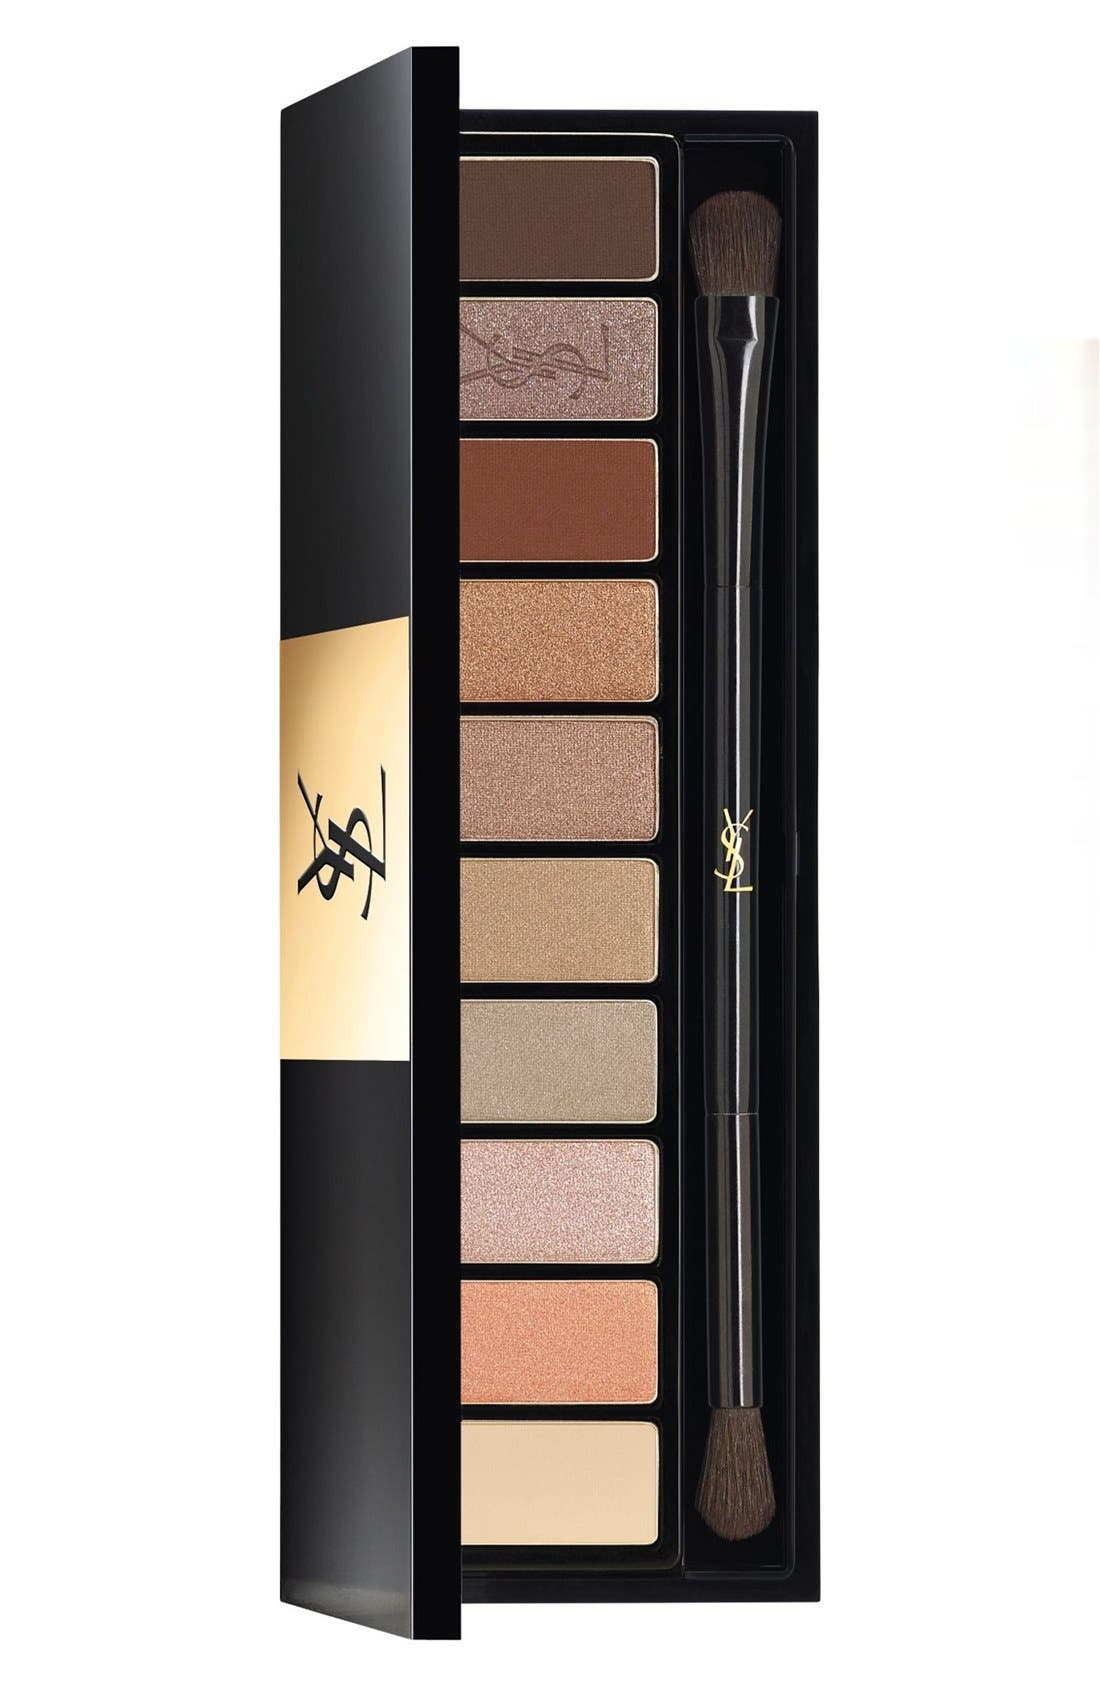 Yves Saint Laurent 'Nude' Couture Variation Ten-Color Expert Eye Palette